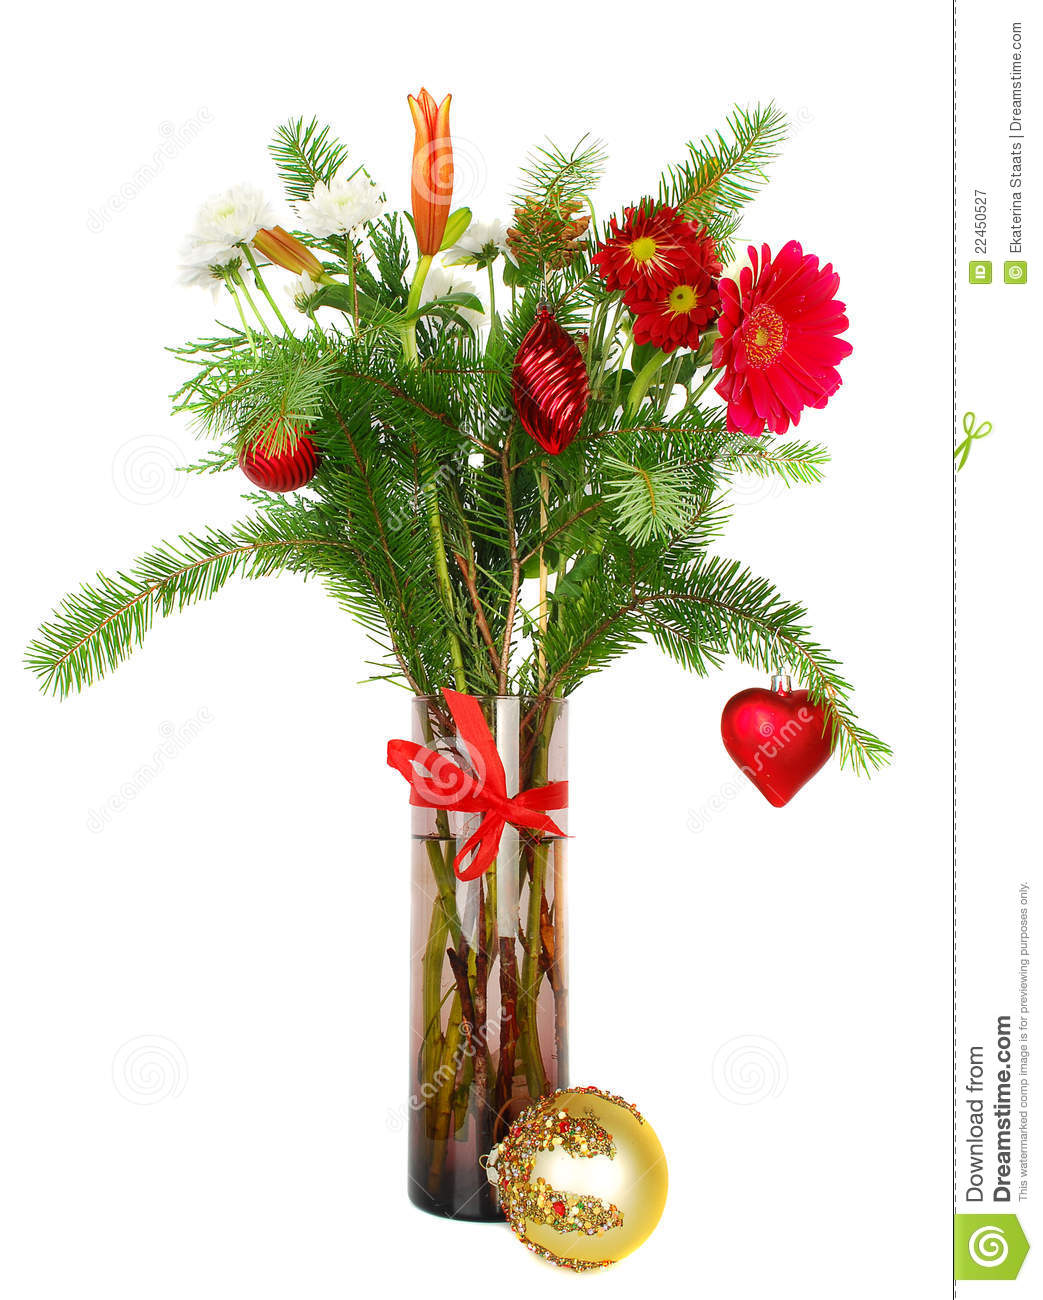 Free christmas flowers download picture freeuse download Christmas Flowers Bouquet Royalty Free Stock Photography - Image ... picture freeuse download